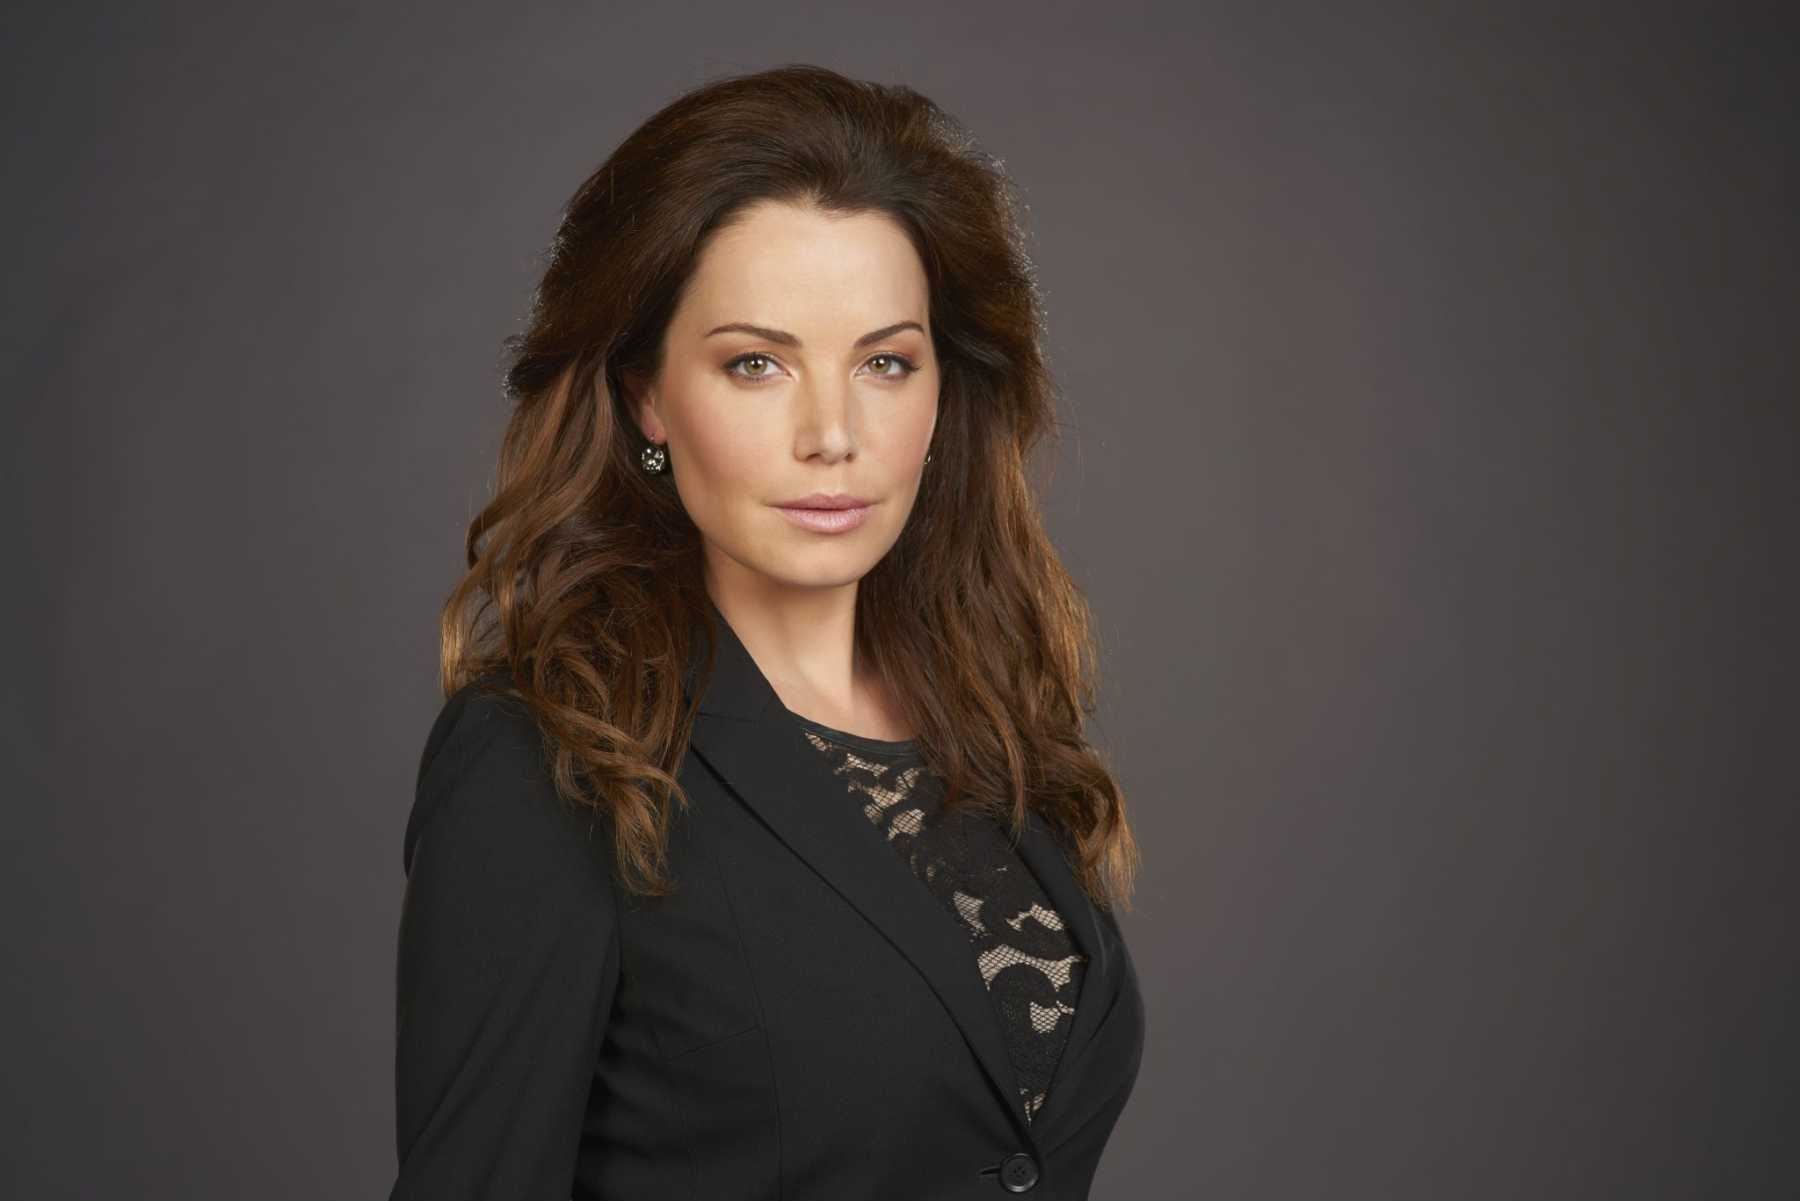 Erica Durance Joins Supergirl Cast  | Erica Durance